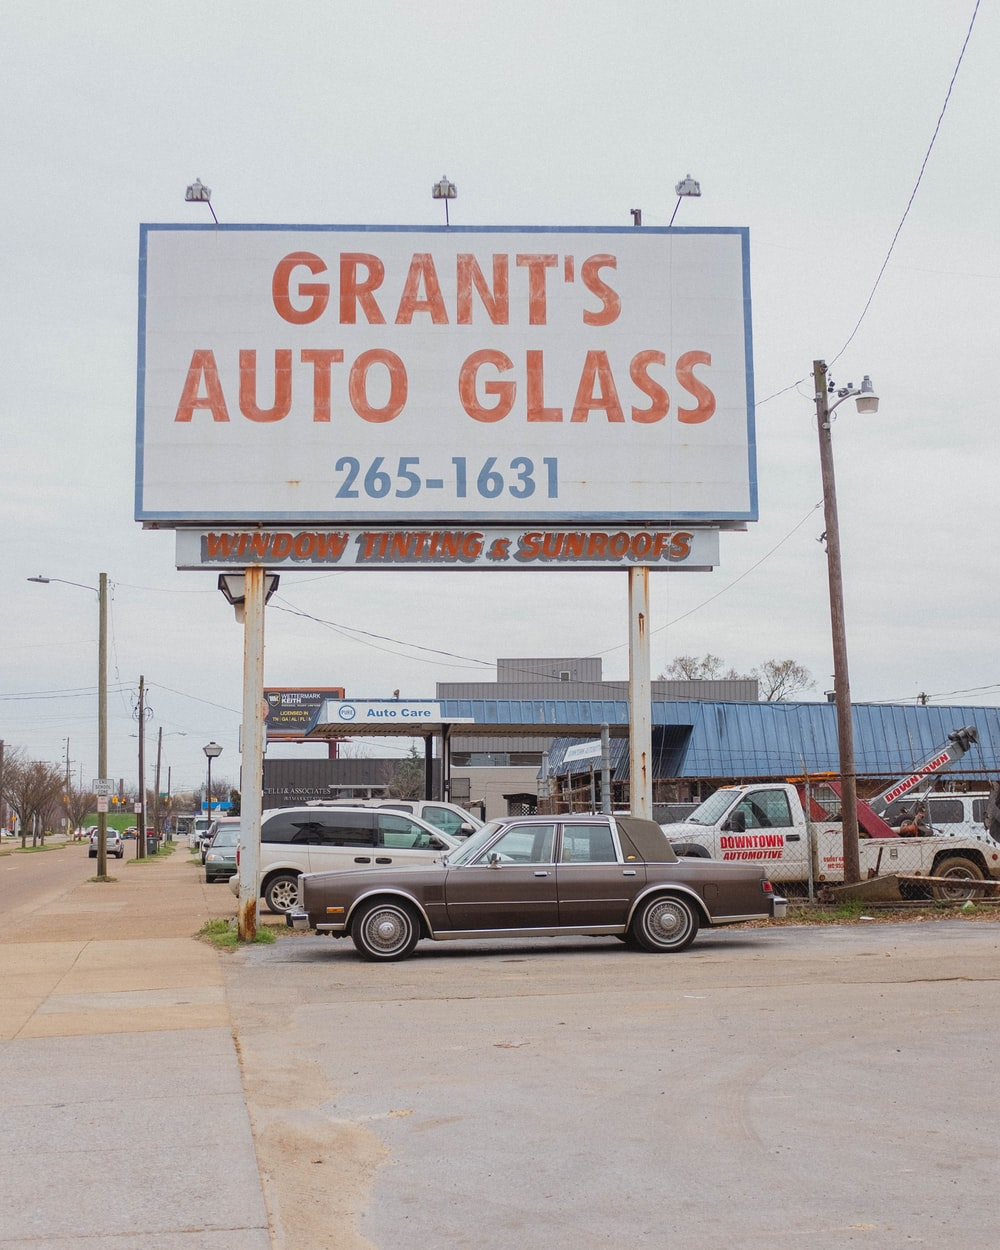 cars parked near Grant's auto Glass signage